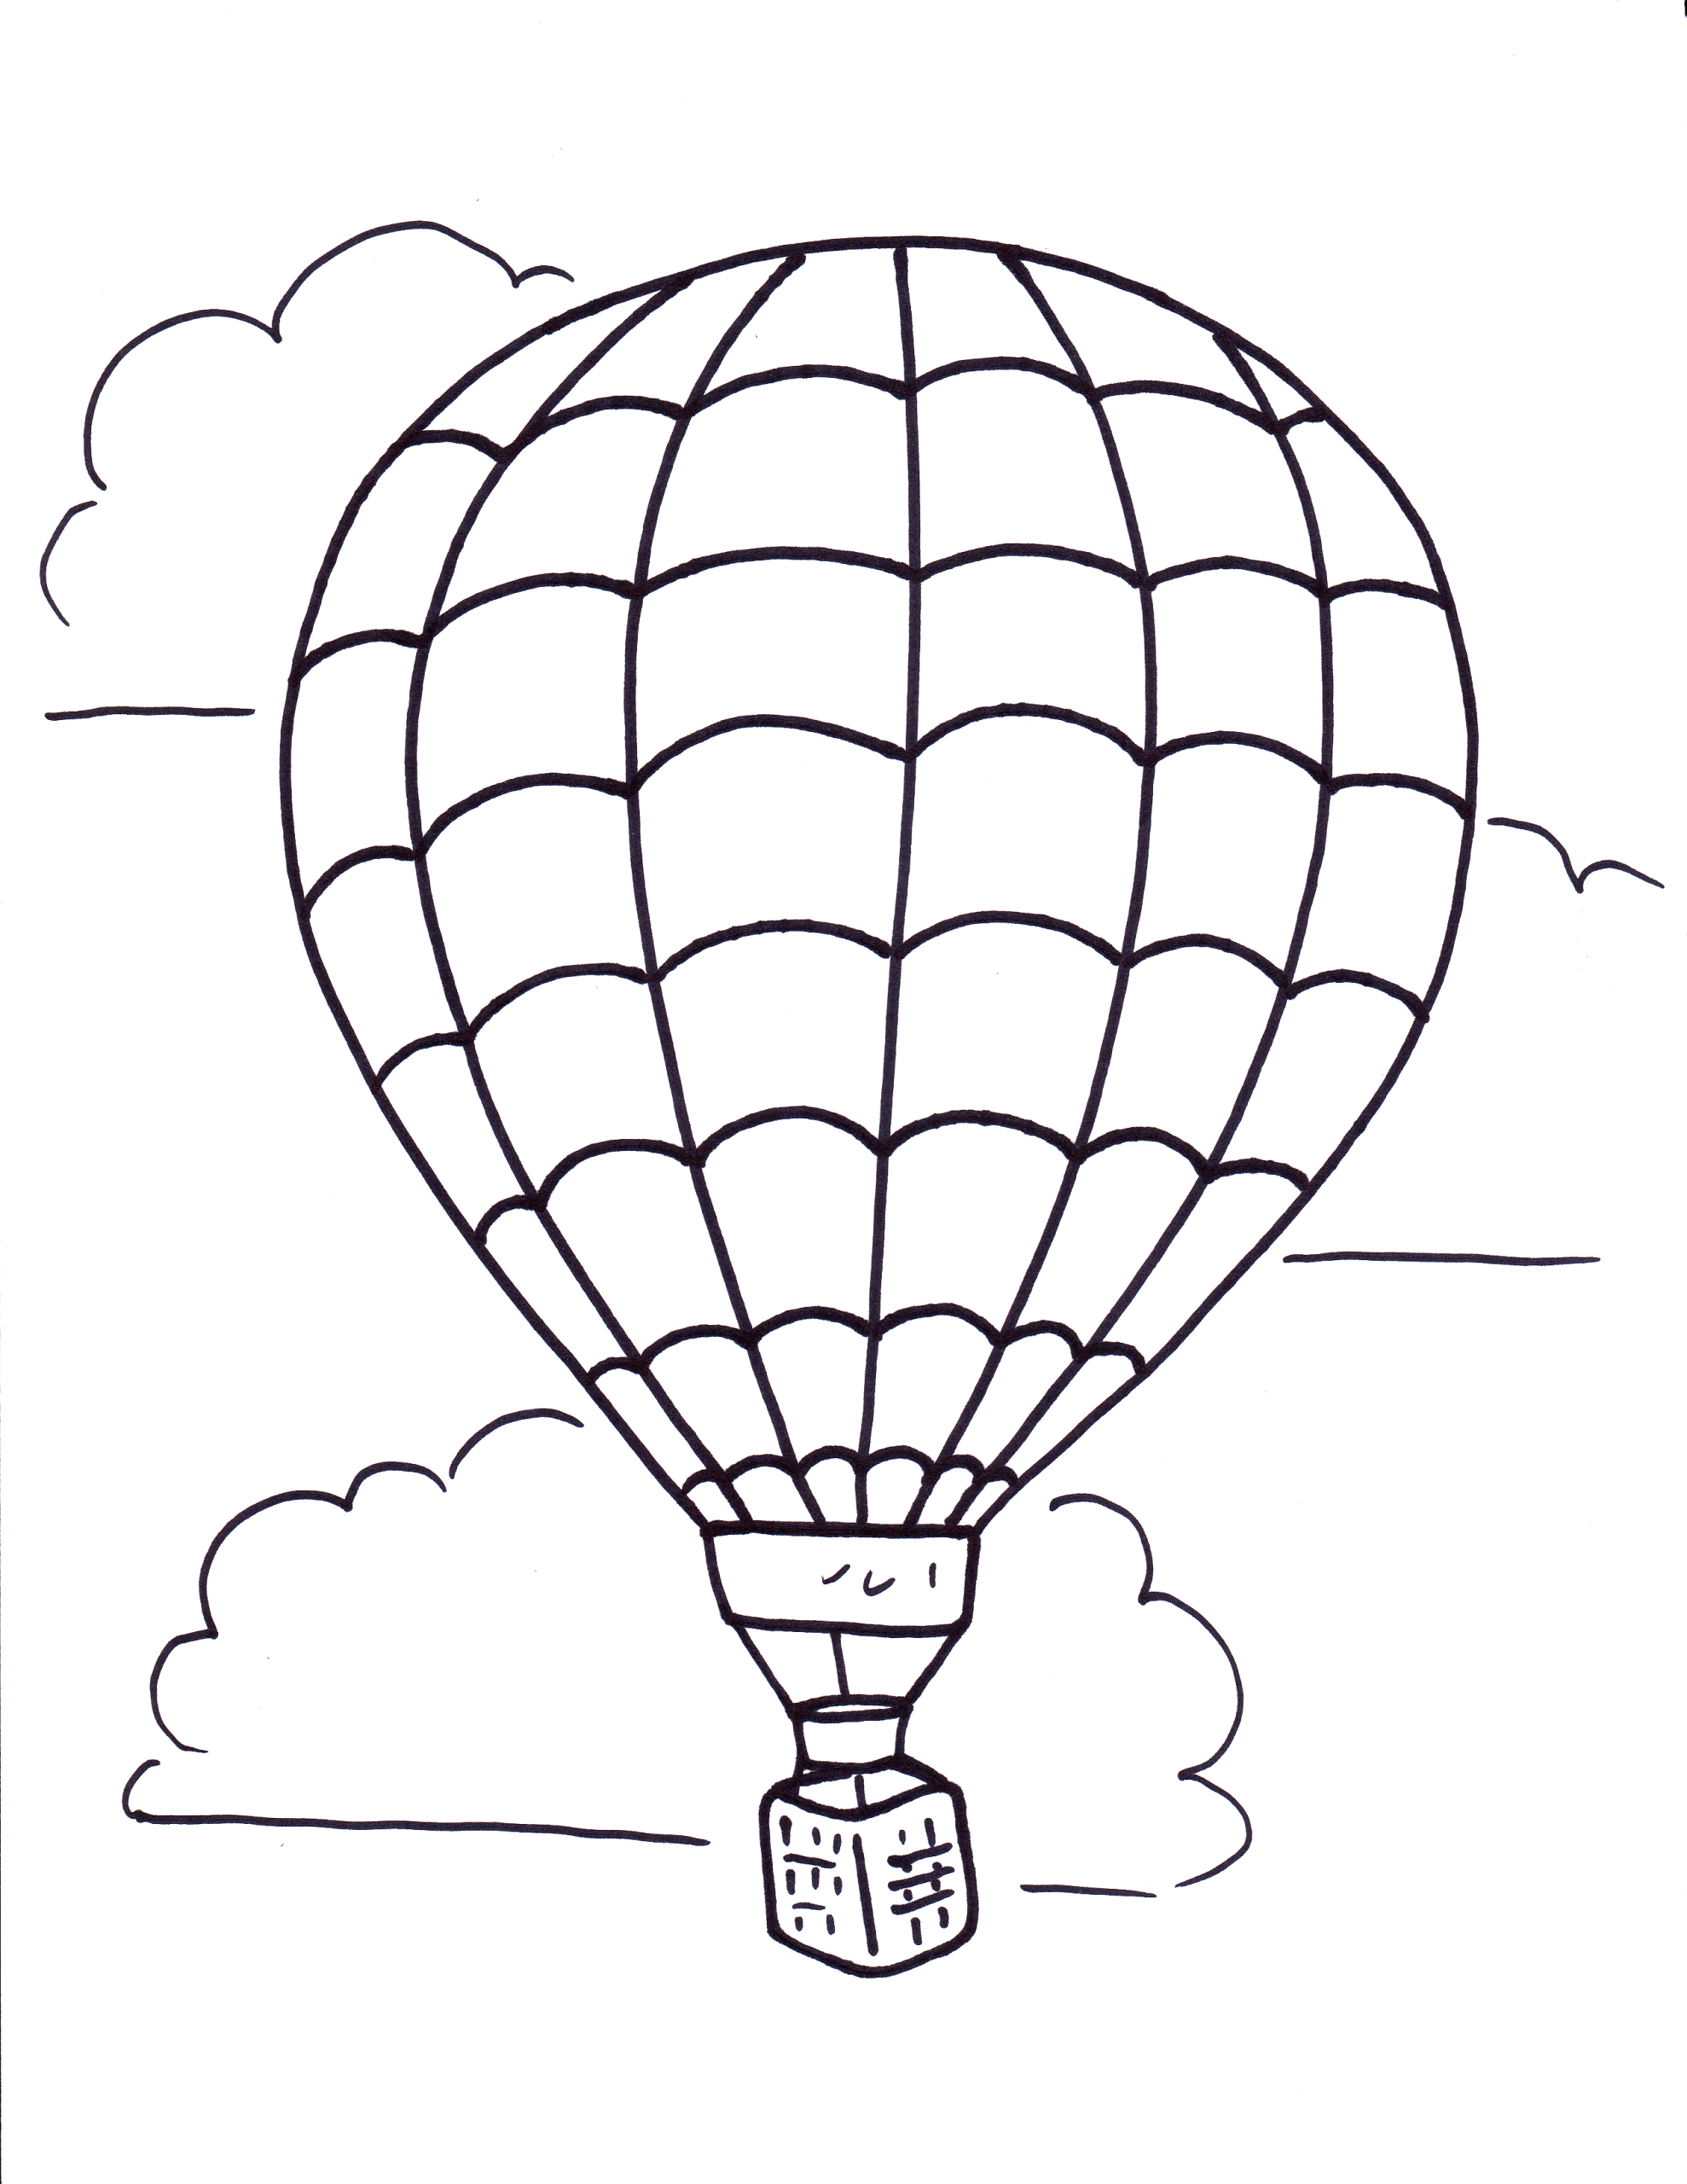 Free Printable Coloring Pages Of Hot Air Balloons Hot Air Balloon Coloring Pages Free